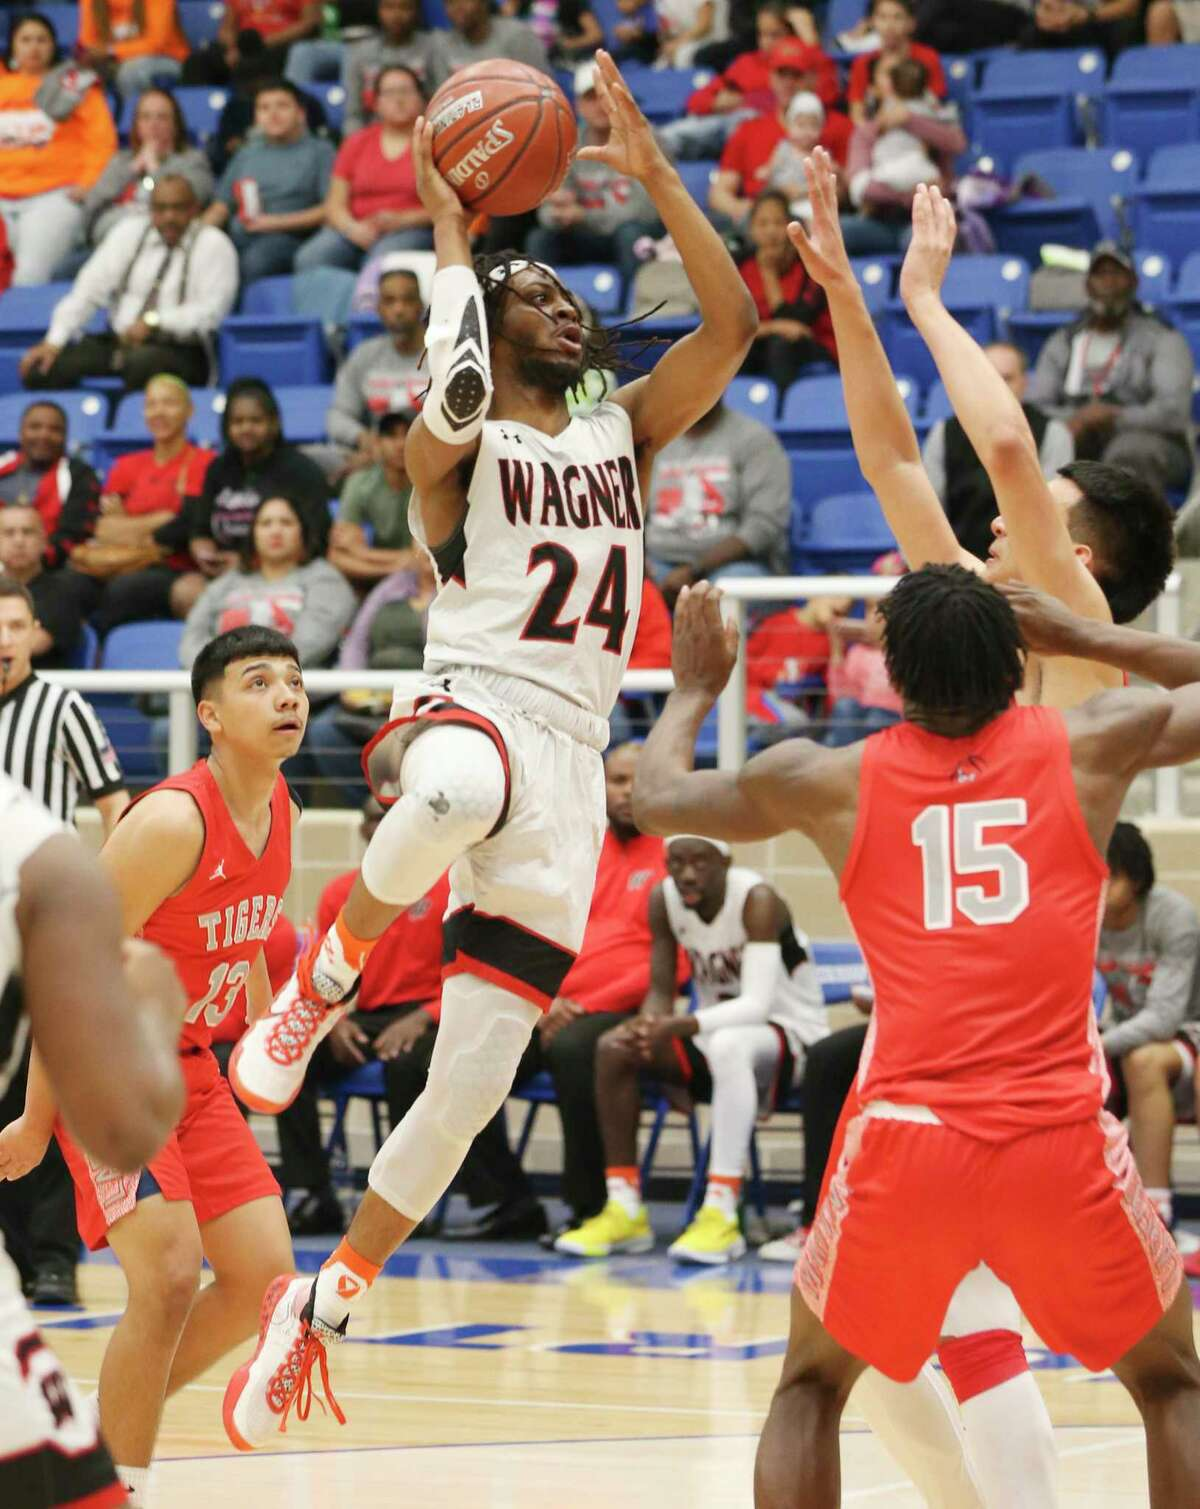 Wagner's Journee Phillips (24) attempts a score against Laredo Martin during their Boys 5A Regional semifinal basketball game on Friday, Mar. 6, 2020. Wagner defeated Laredo Martin, 58-47, to advance to the regional final game.